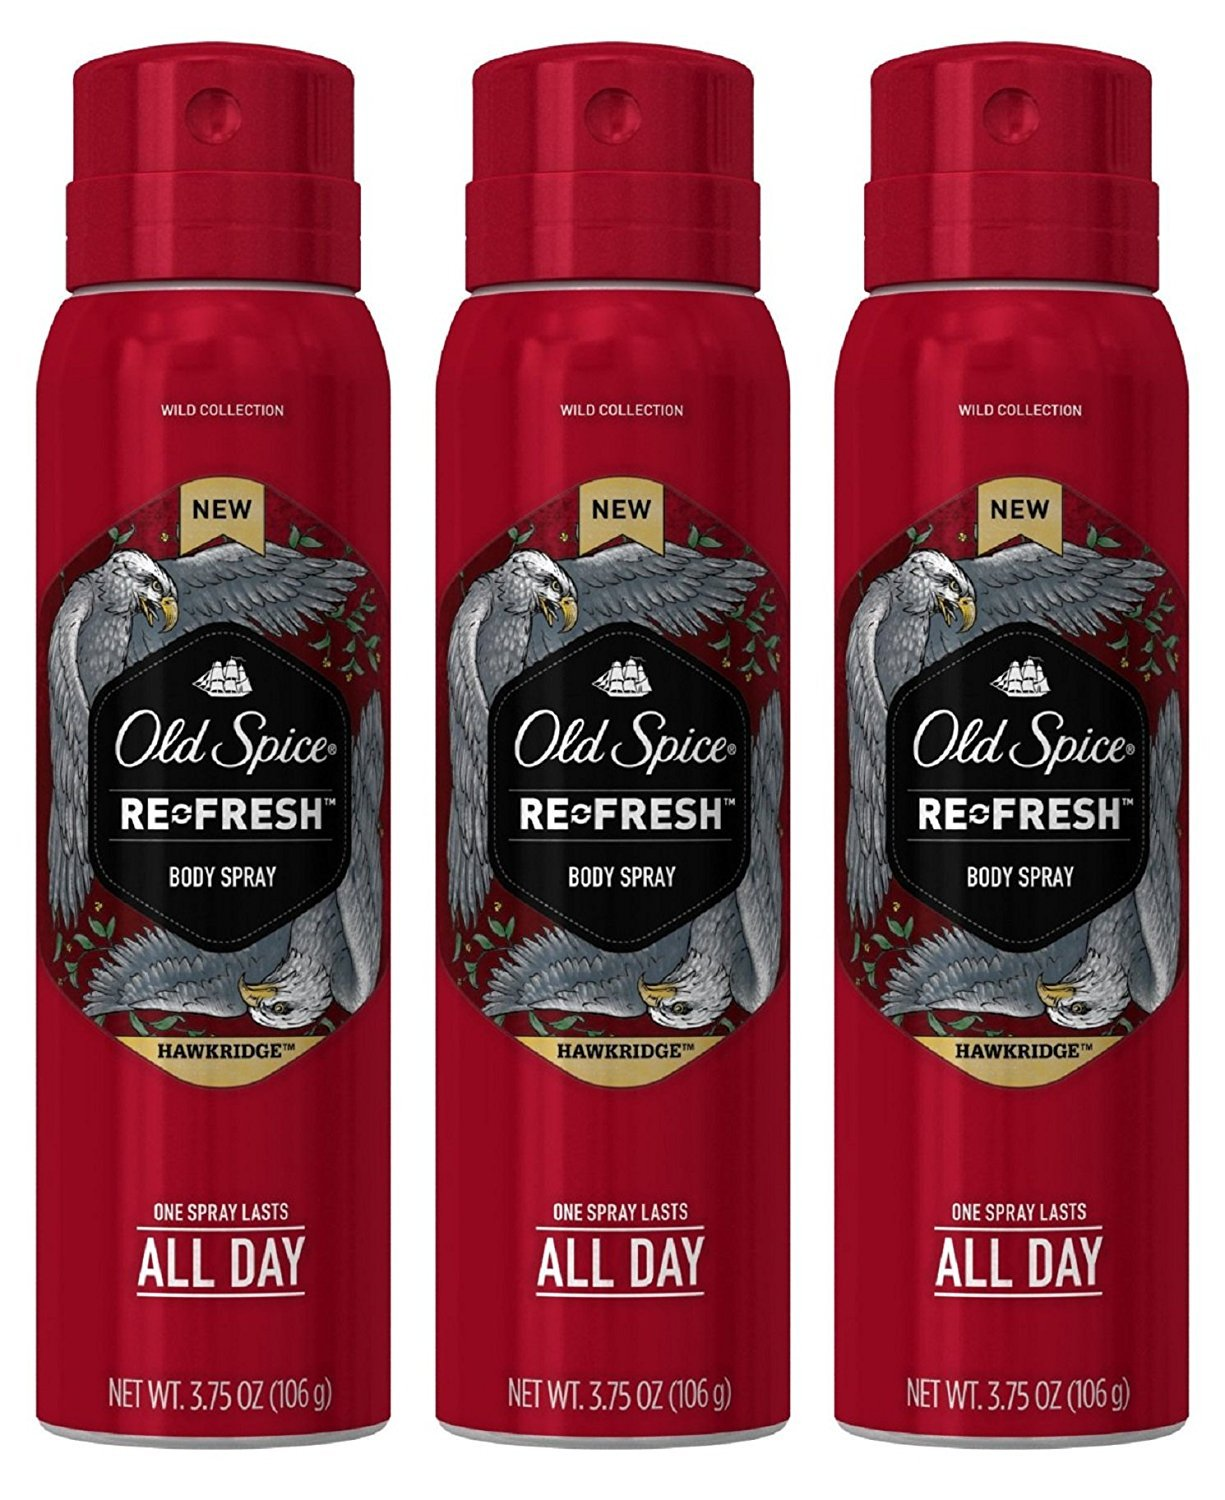 Old Spice Refresh Body Spray, Hawkridge 3.75 oz by Old Spice PROCTER & GAMBLE-BEAUTY